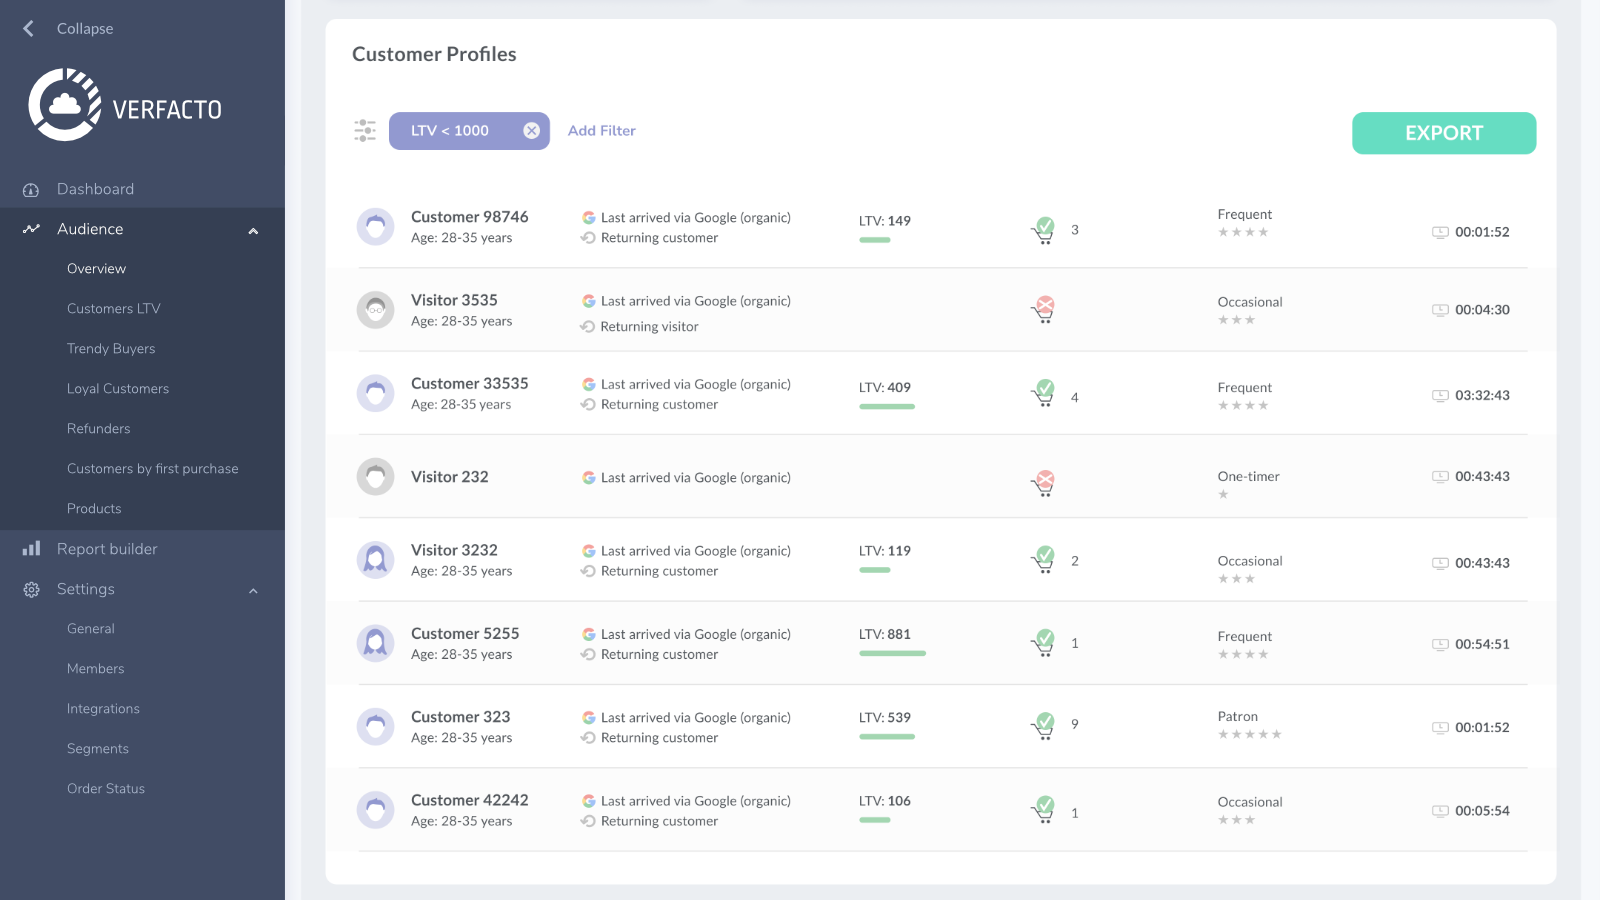 A high-level overview of customer profiles